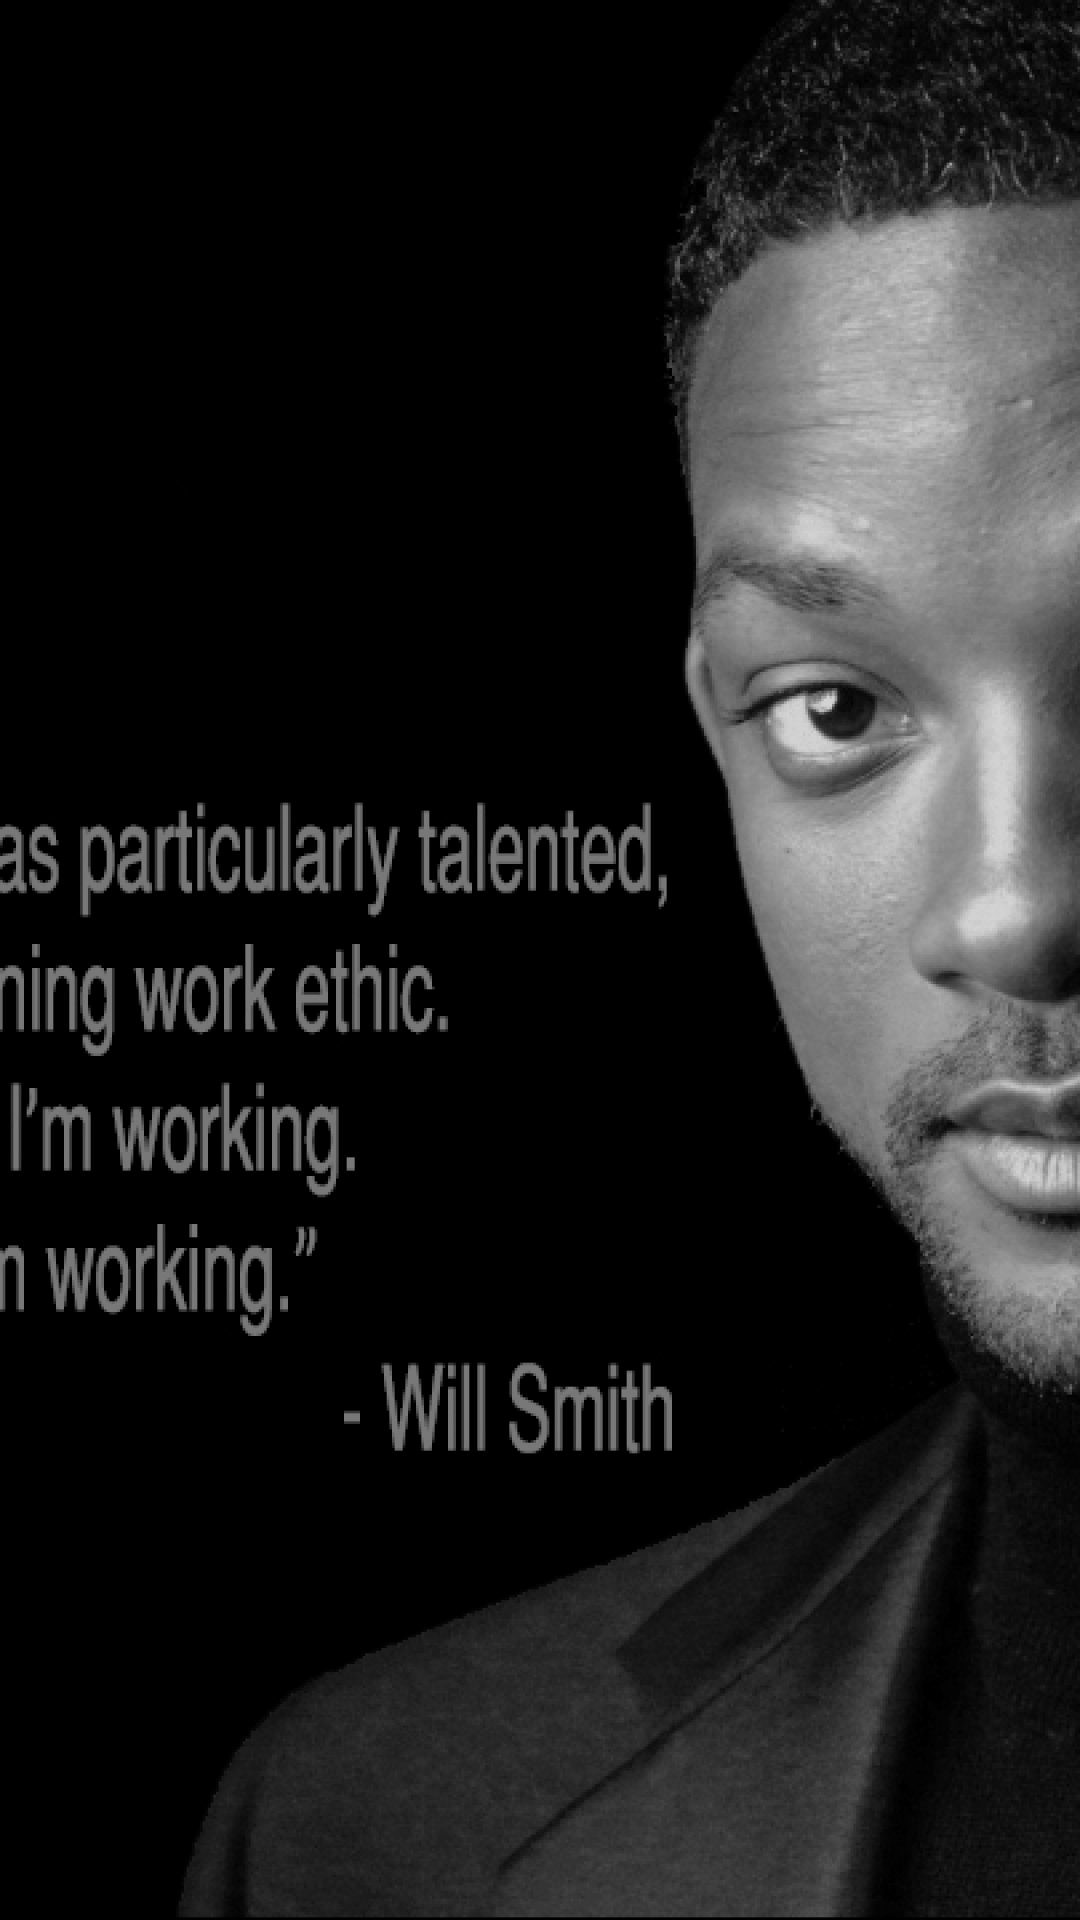 Will Smith Inspirational Quotes Wallpaper   Data-src - Will Smith Quote Iphone - HD Wallpaper